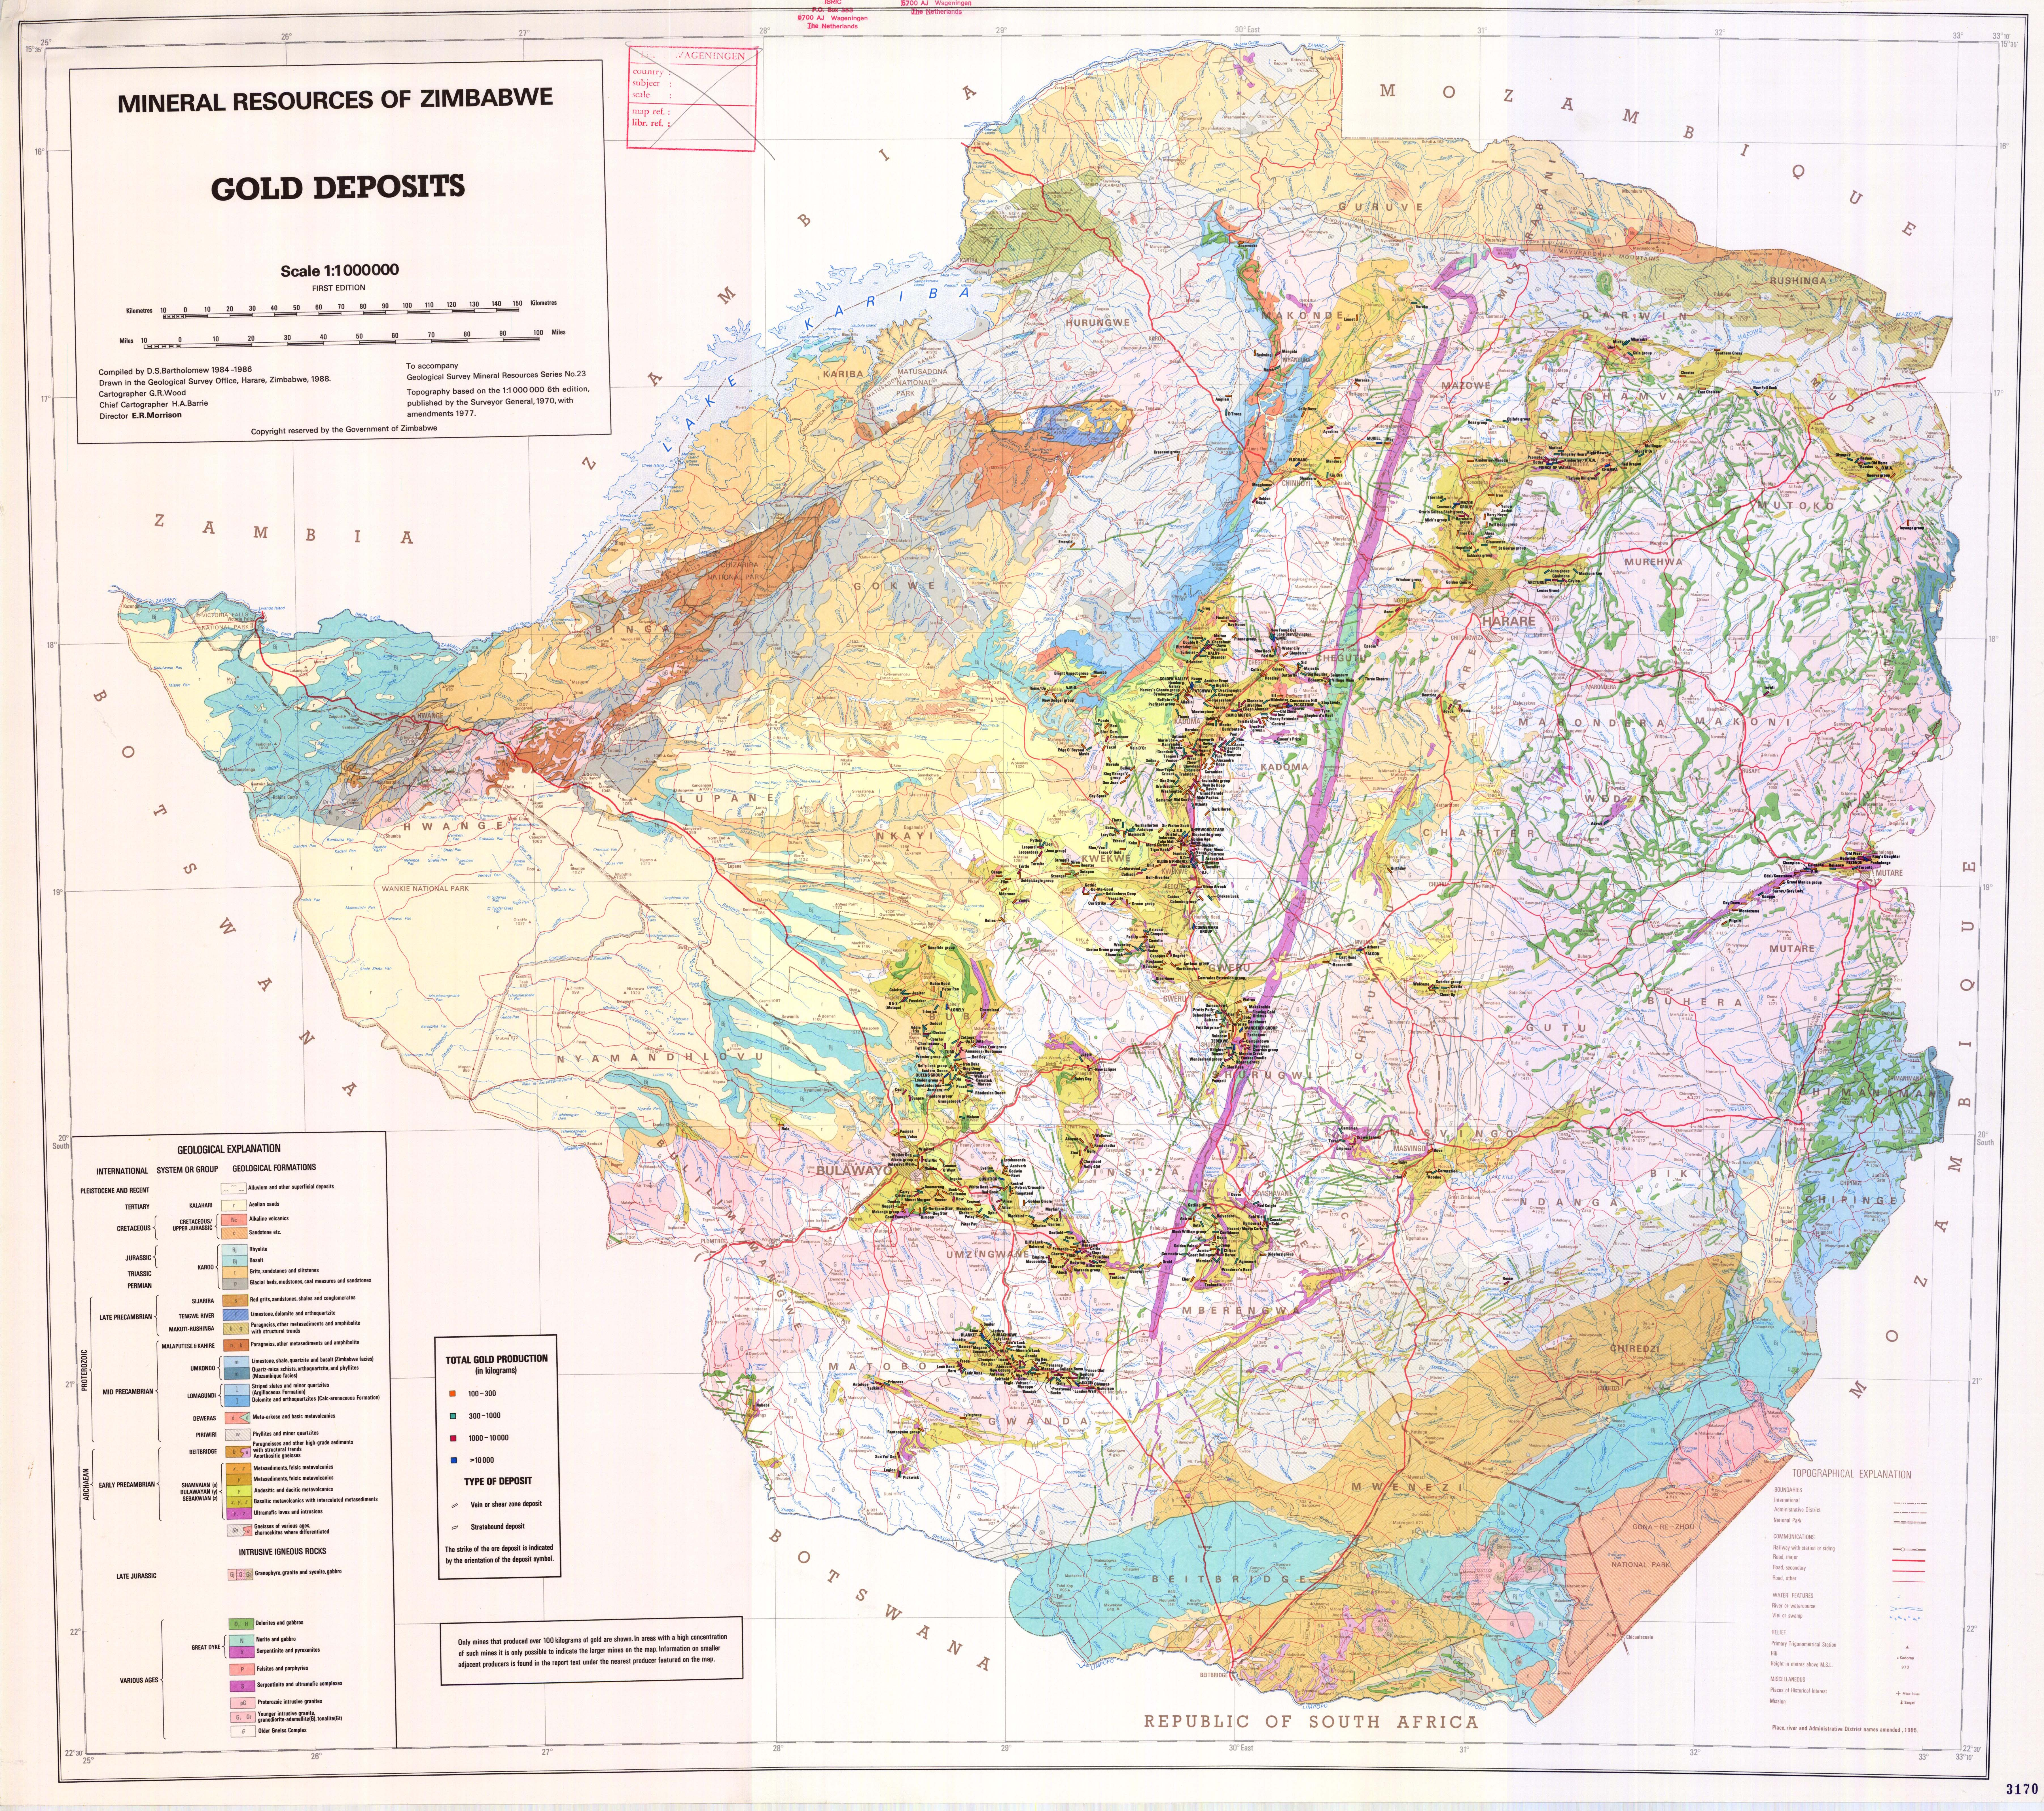 National soil maps eudasm esdac european commission mineral resources of zimbabwe gold deposits gumiabroncs Images